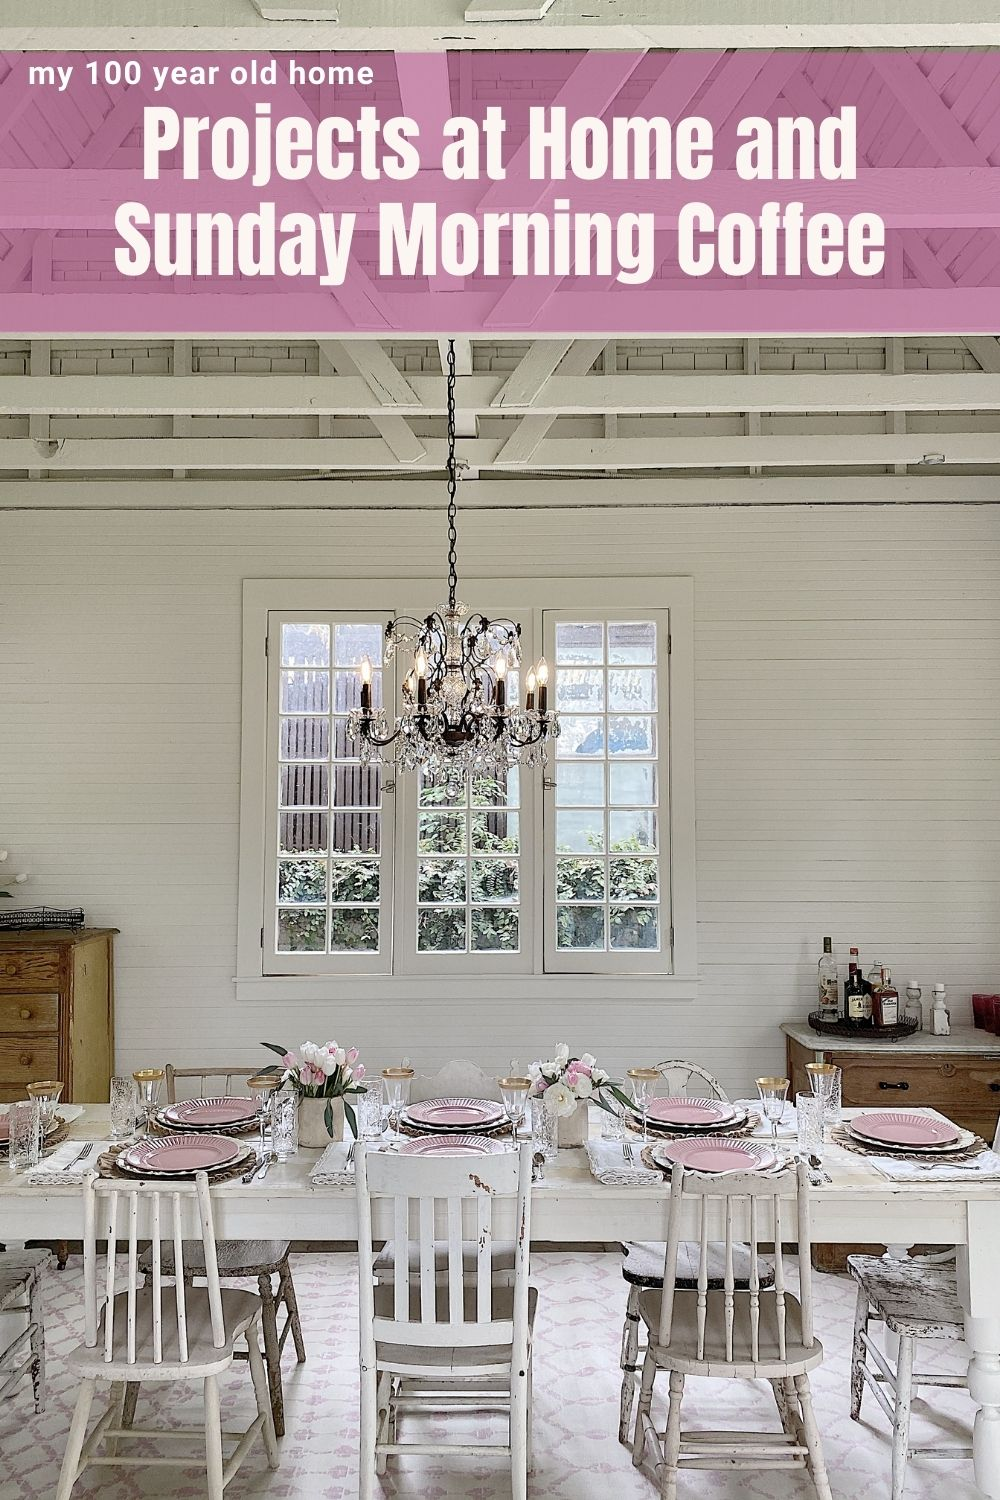 Welcome to Sunday Morning Coffee. Today I am sharing my weekly thoughts about entertaining, decor, crafts, and all of our projects at home, including the remodel of the Carriage House!